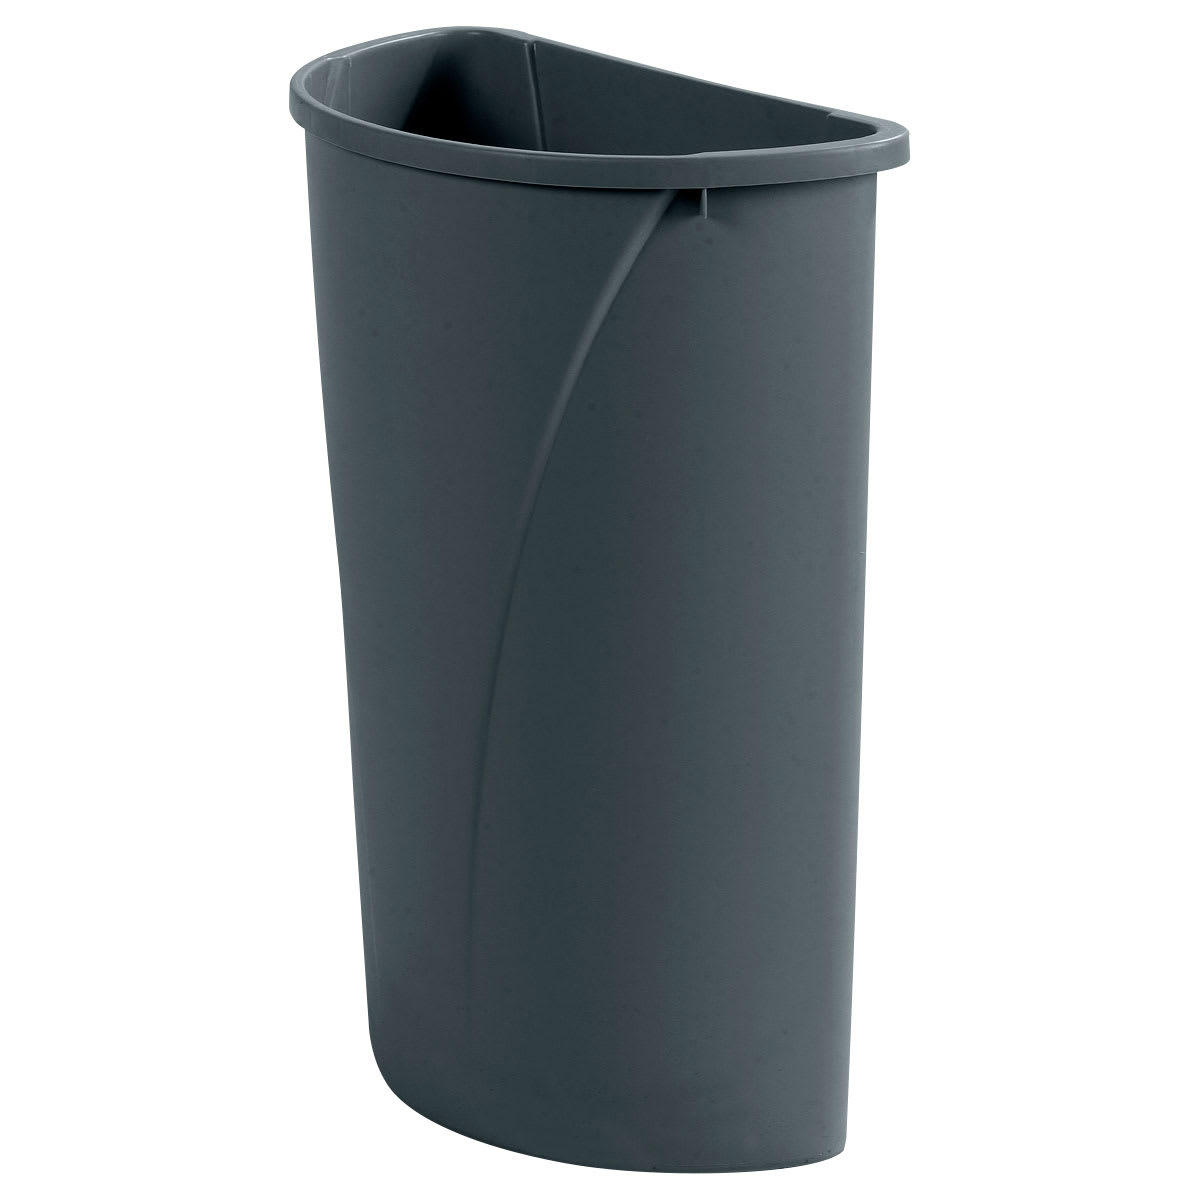 Carlisle 34302123 21-gallon Commercial Trash Can - Plastic, Half Round, Built-in Handles